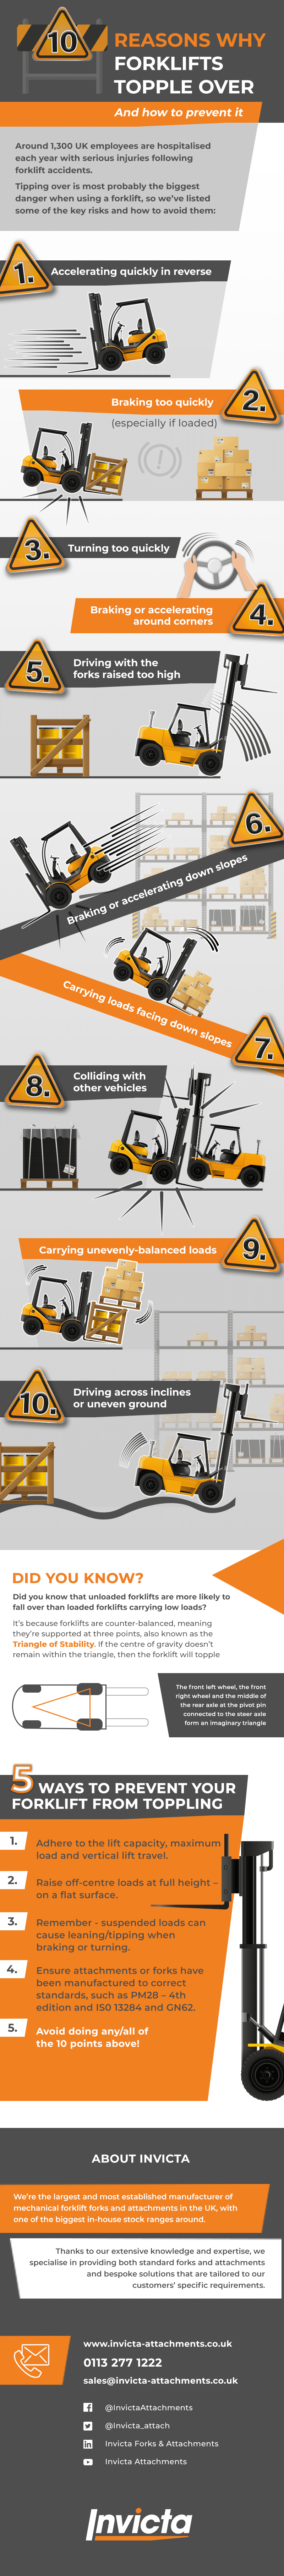 Invicta-10-reasons-why-forklifts-tip-over